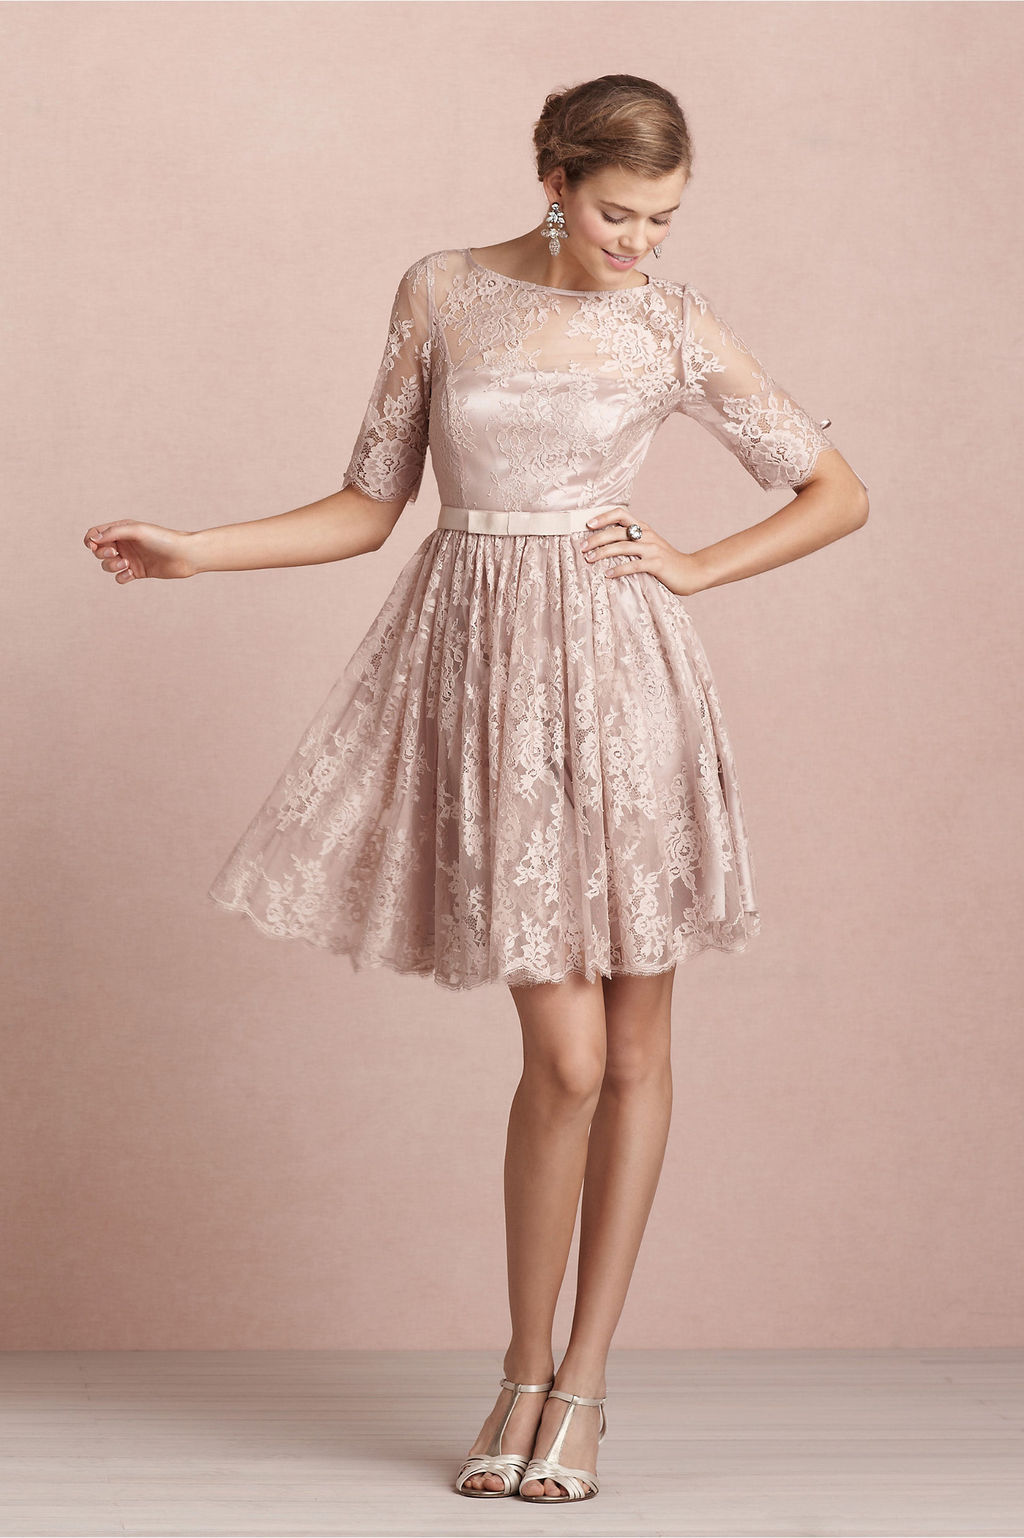 Covetable-bridesmaid-dresses-from-bhldn-2013-bridal-party-style-blush-lace.full